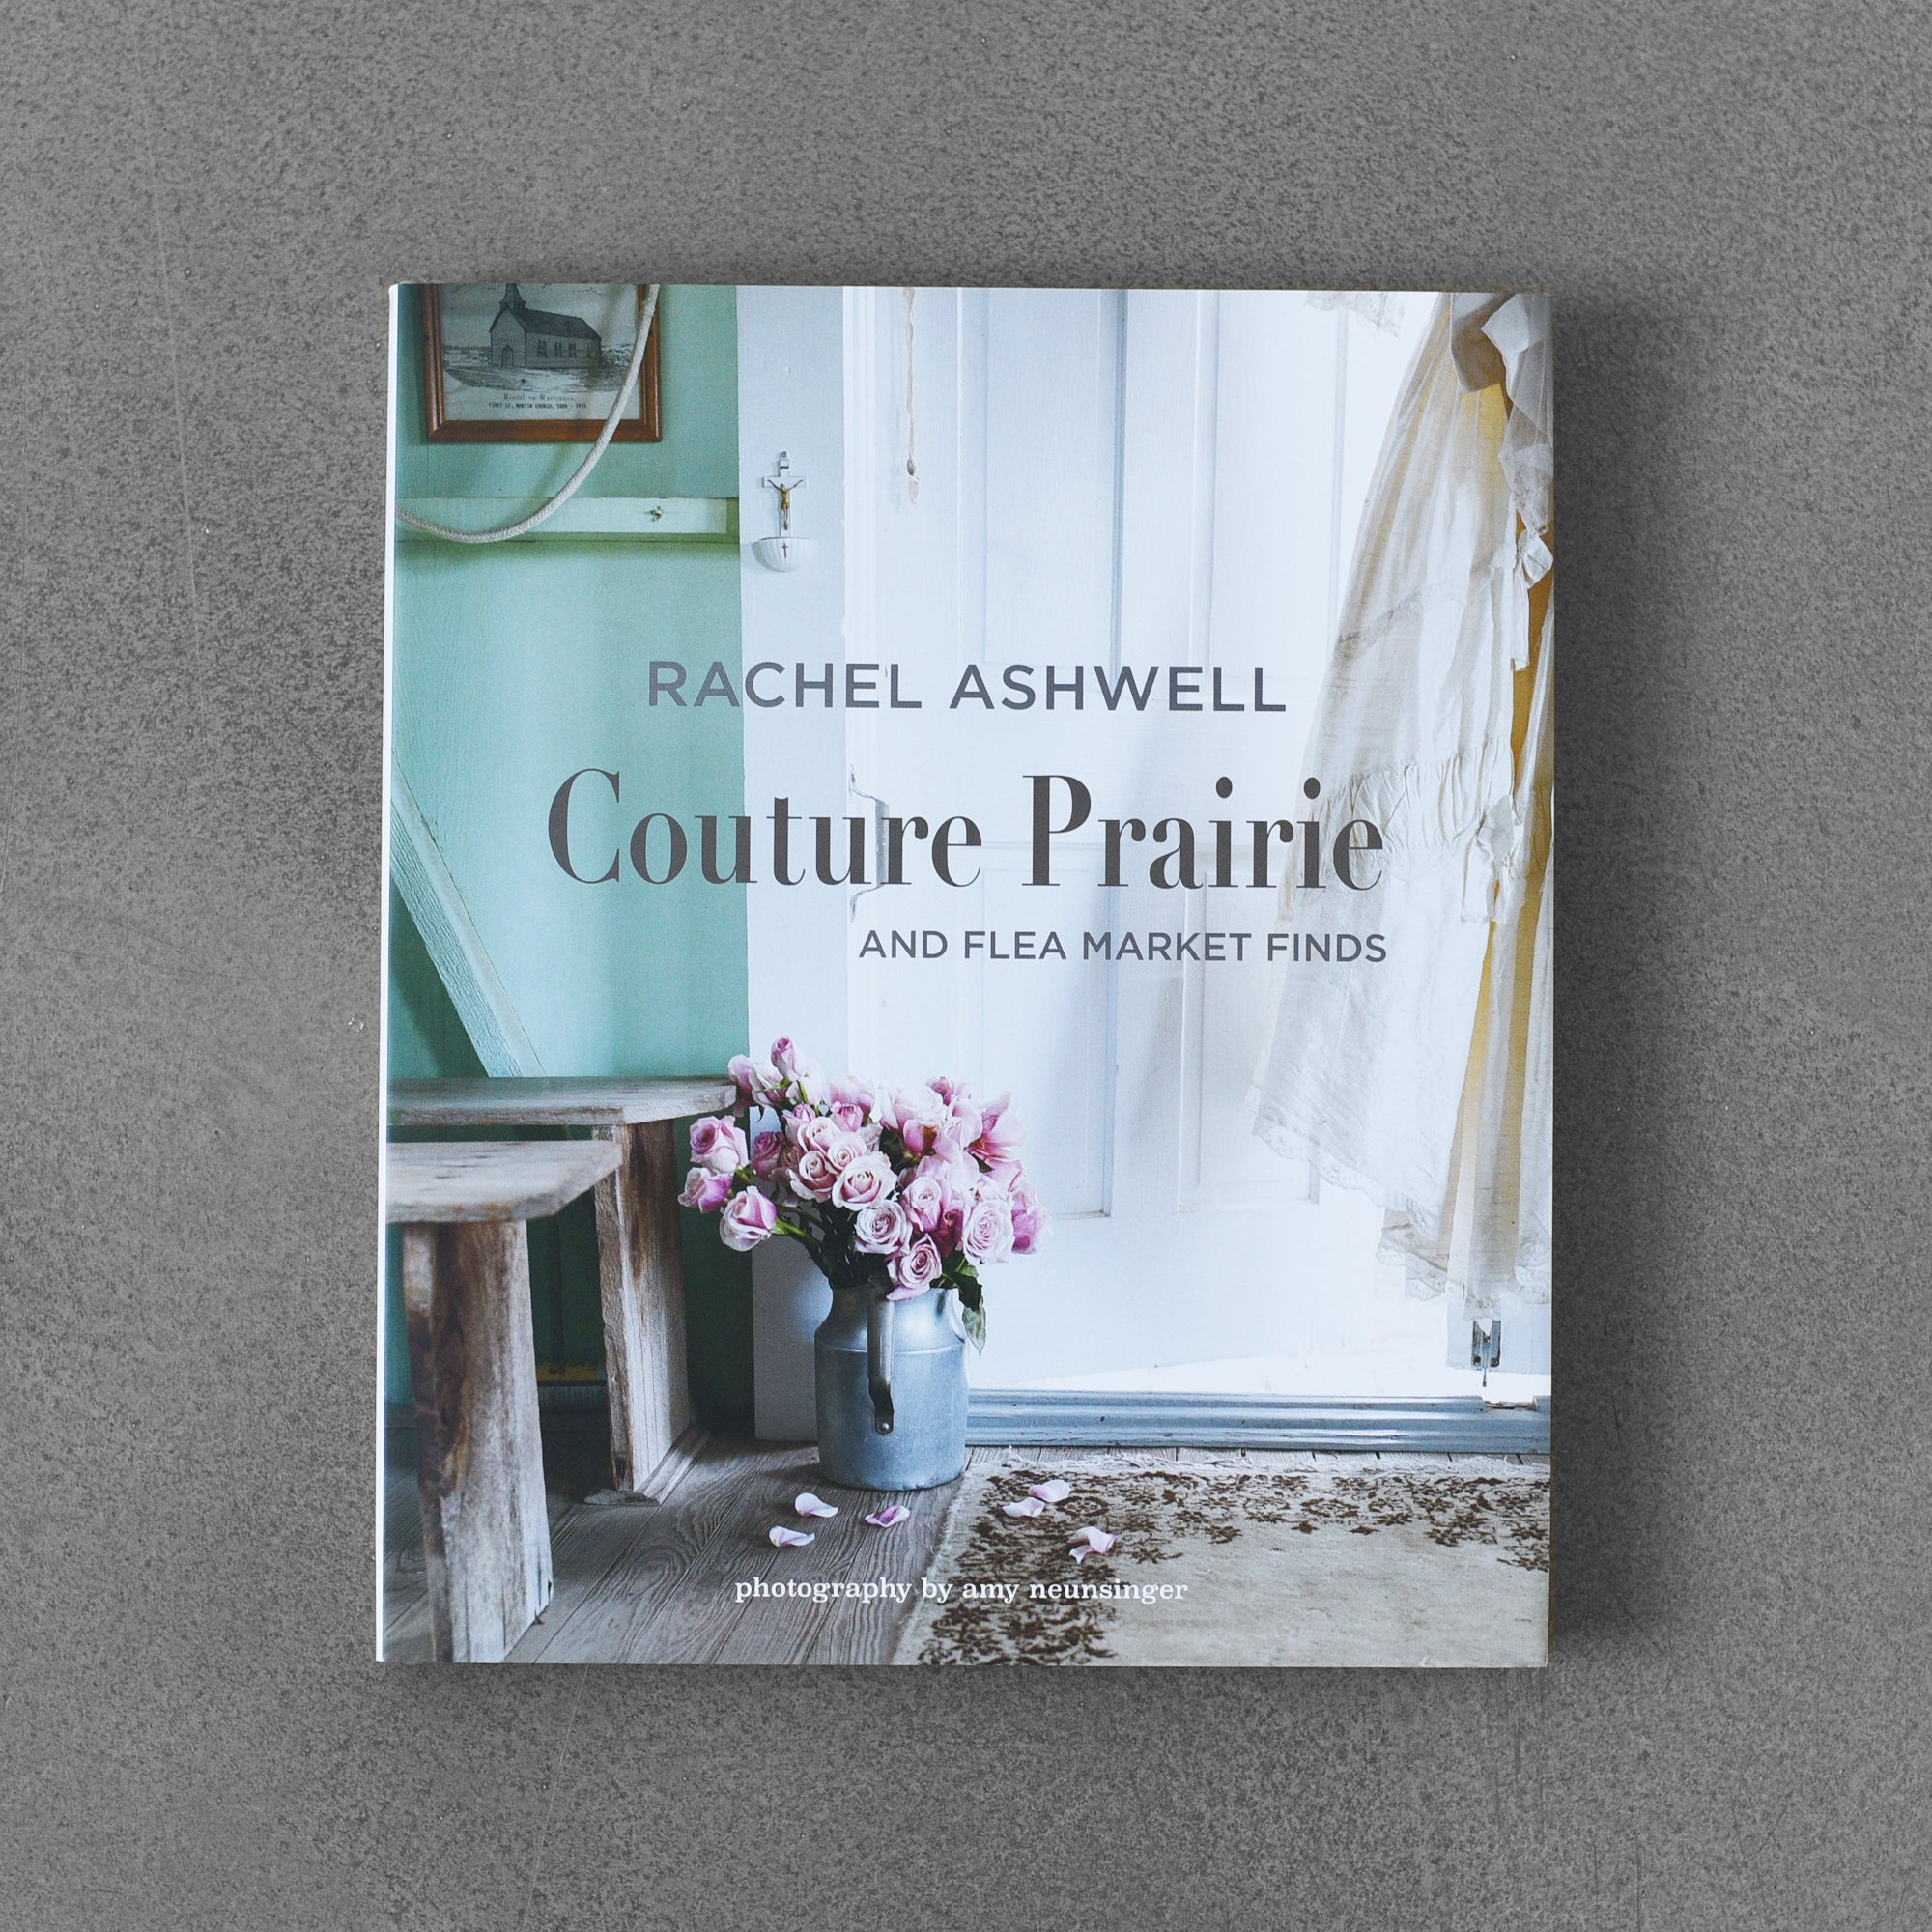 Couture Prairie: And Flea Market Finds - Rachel Ashwell